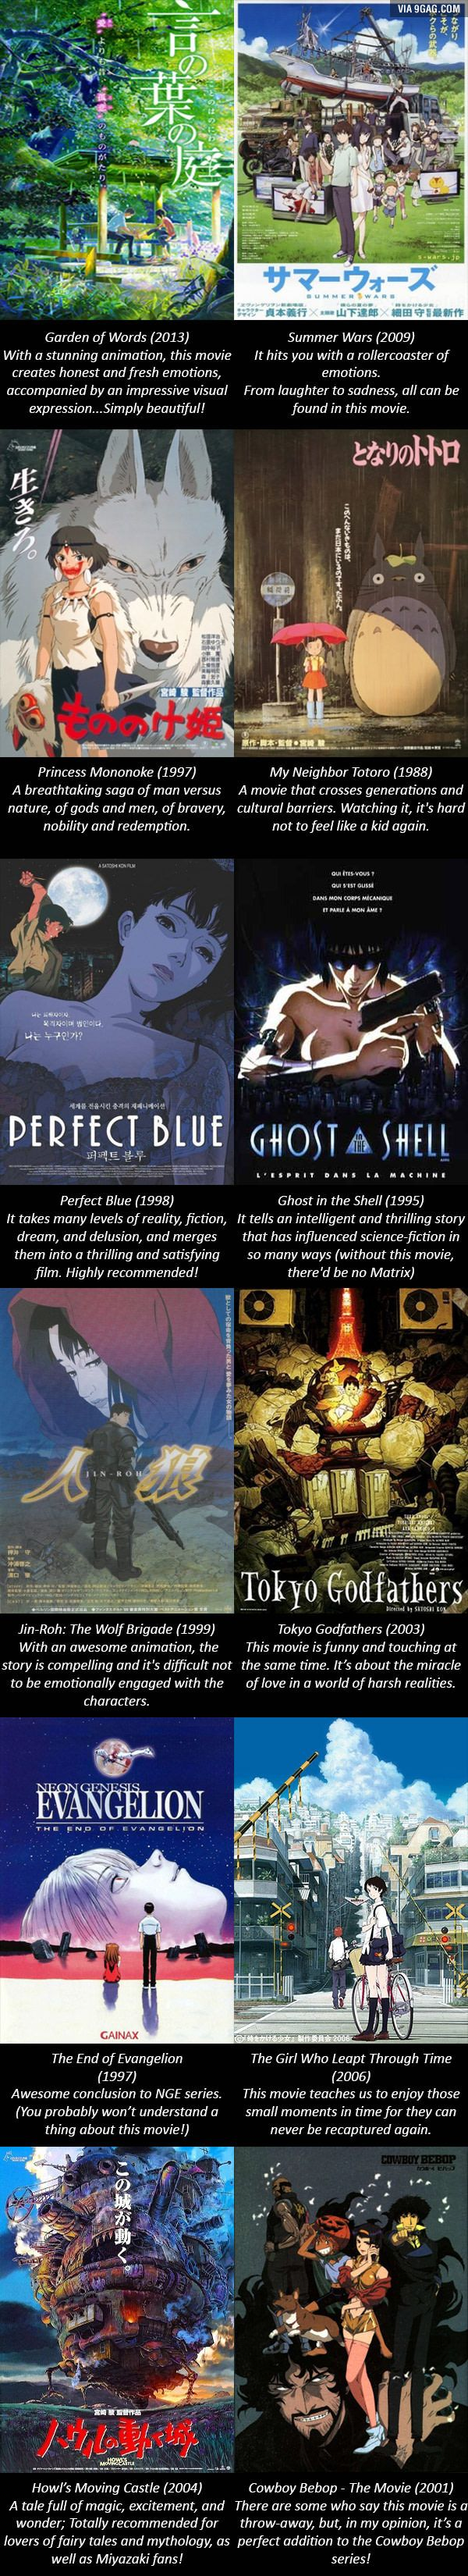 Here S A List Of My Favorite Anime Movies That I Recommend